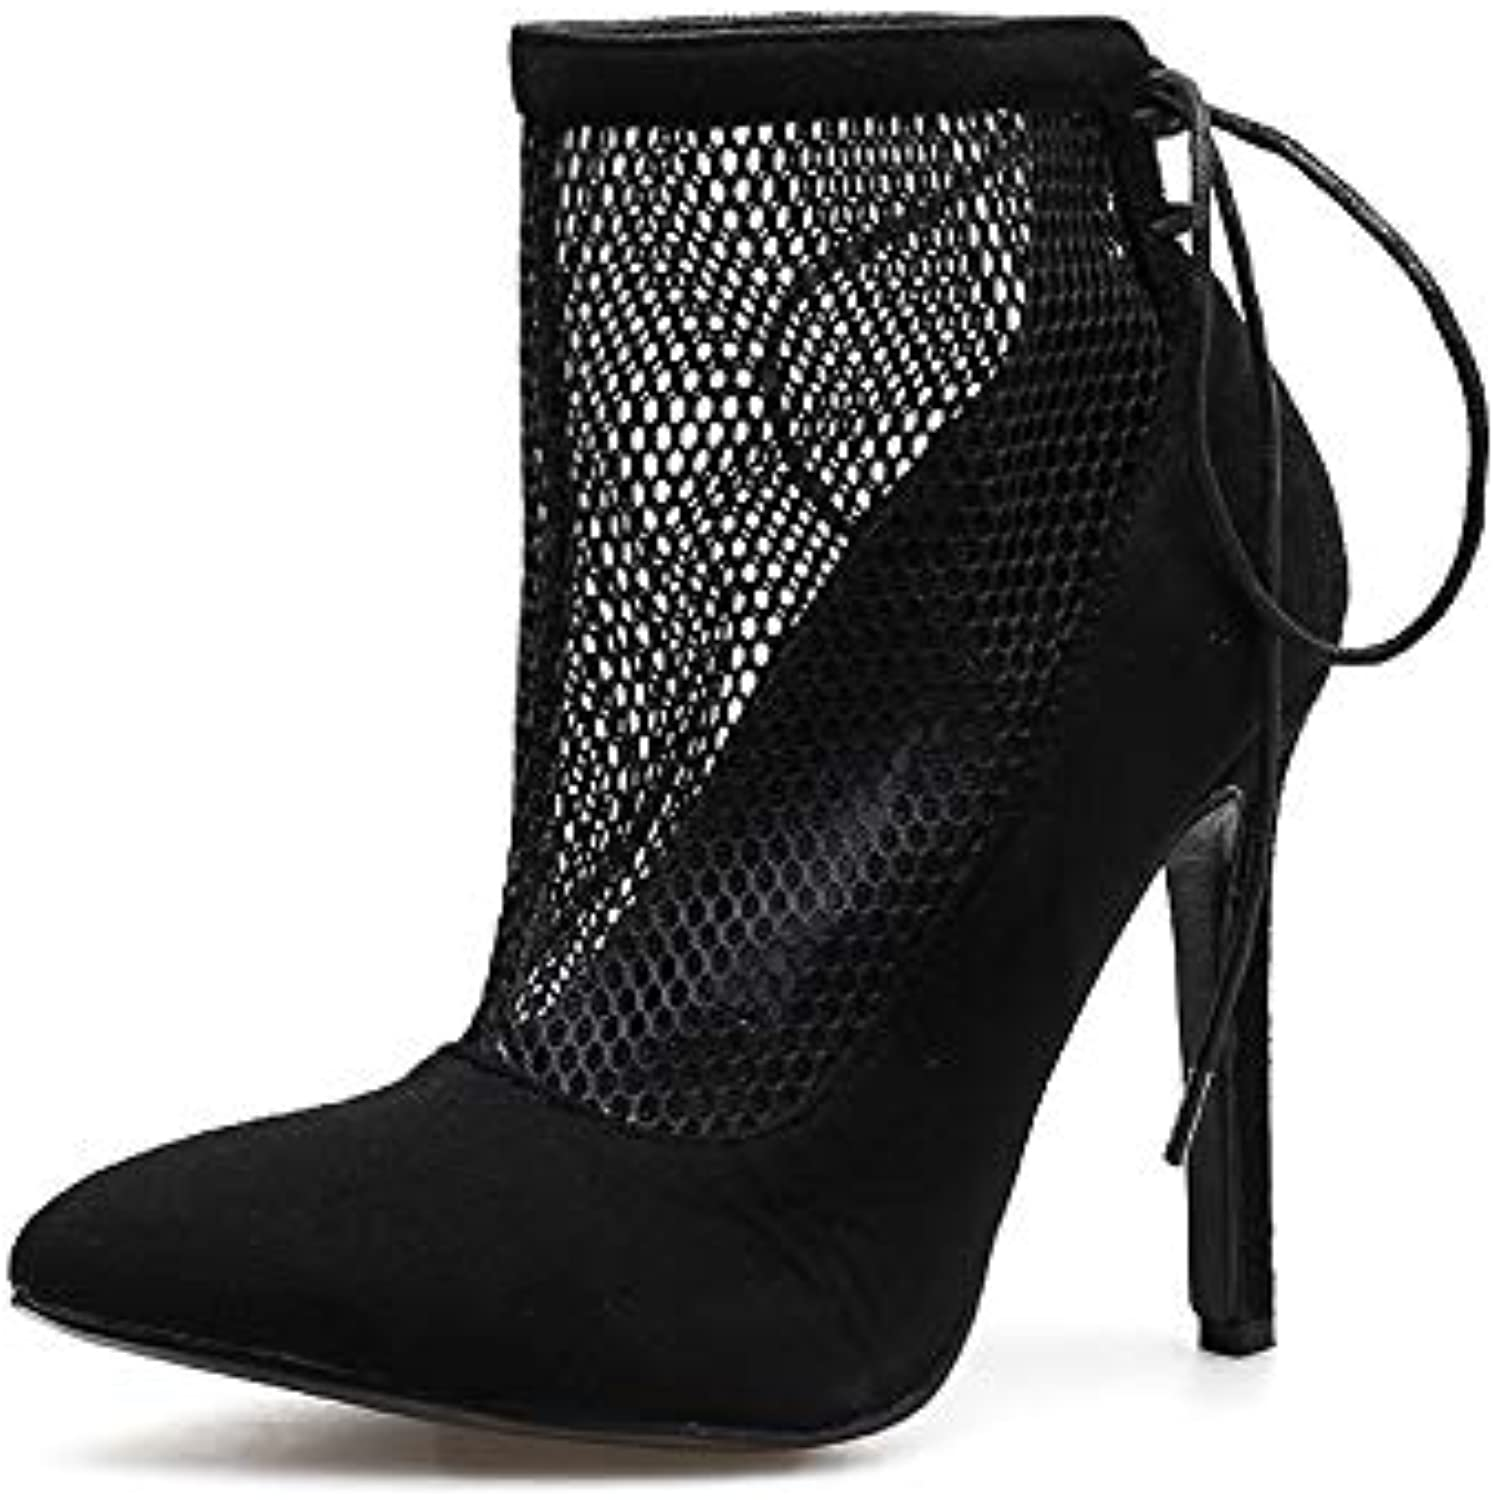 Women's Sandals - Fashion High-Heeled Mesh Openwork Cool Boots Pointed Strap Black Joker shoes